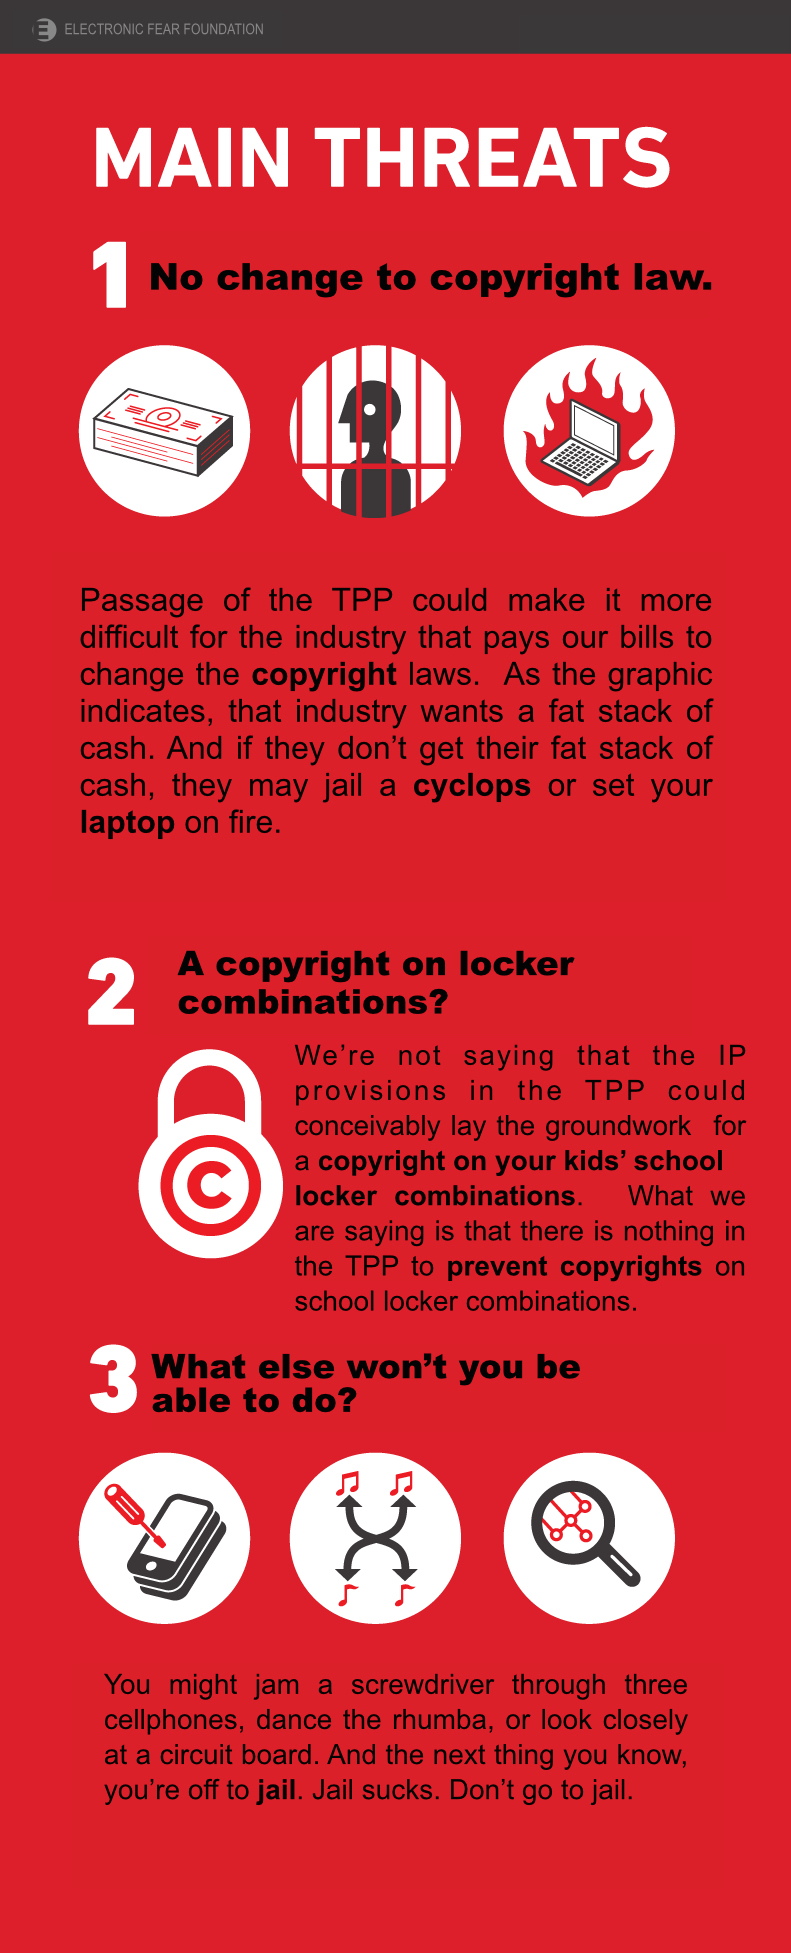 Eff Launches New Tpp Infographic The Illusion Of More Printed Circuit Board Effishtpp01a001 Effishtpp02 Effishttpp03